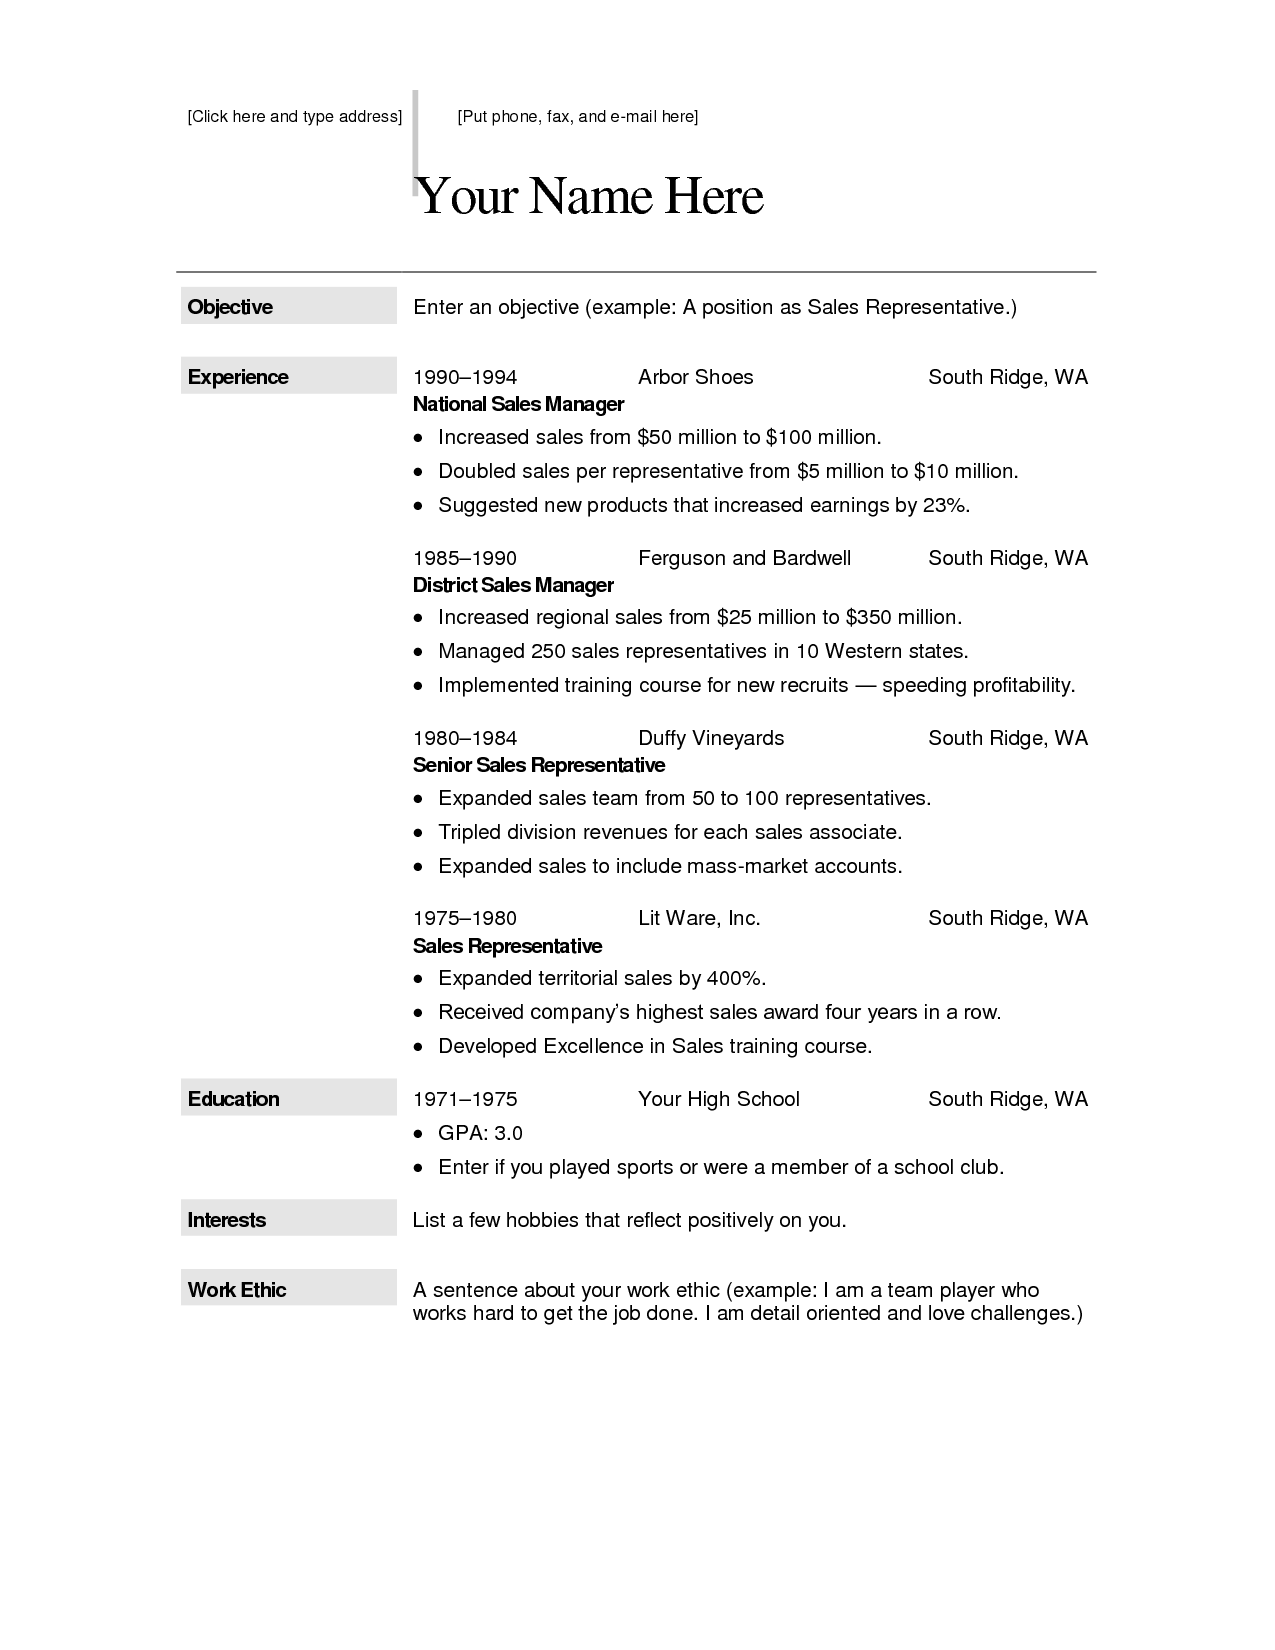 free creative resume templates for macfree creative resume templates for mac modern resume template - Free Professional Resume Template Downloads